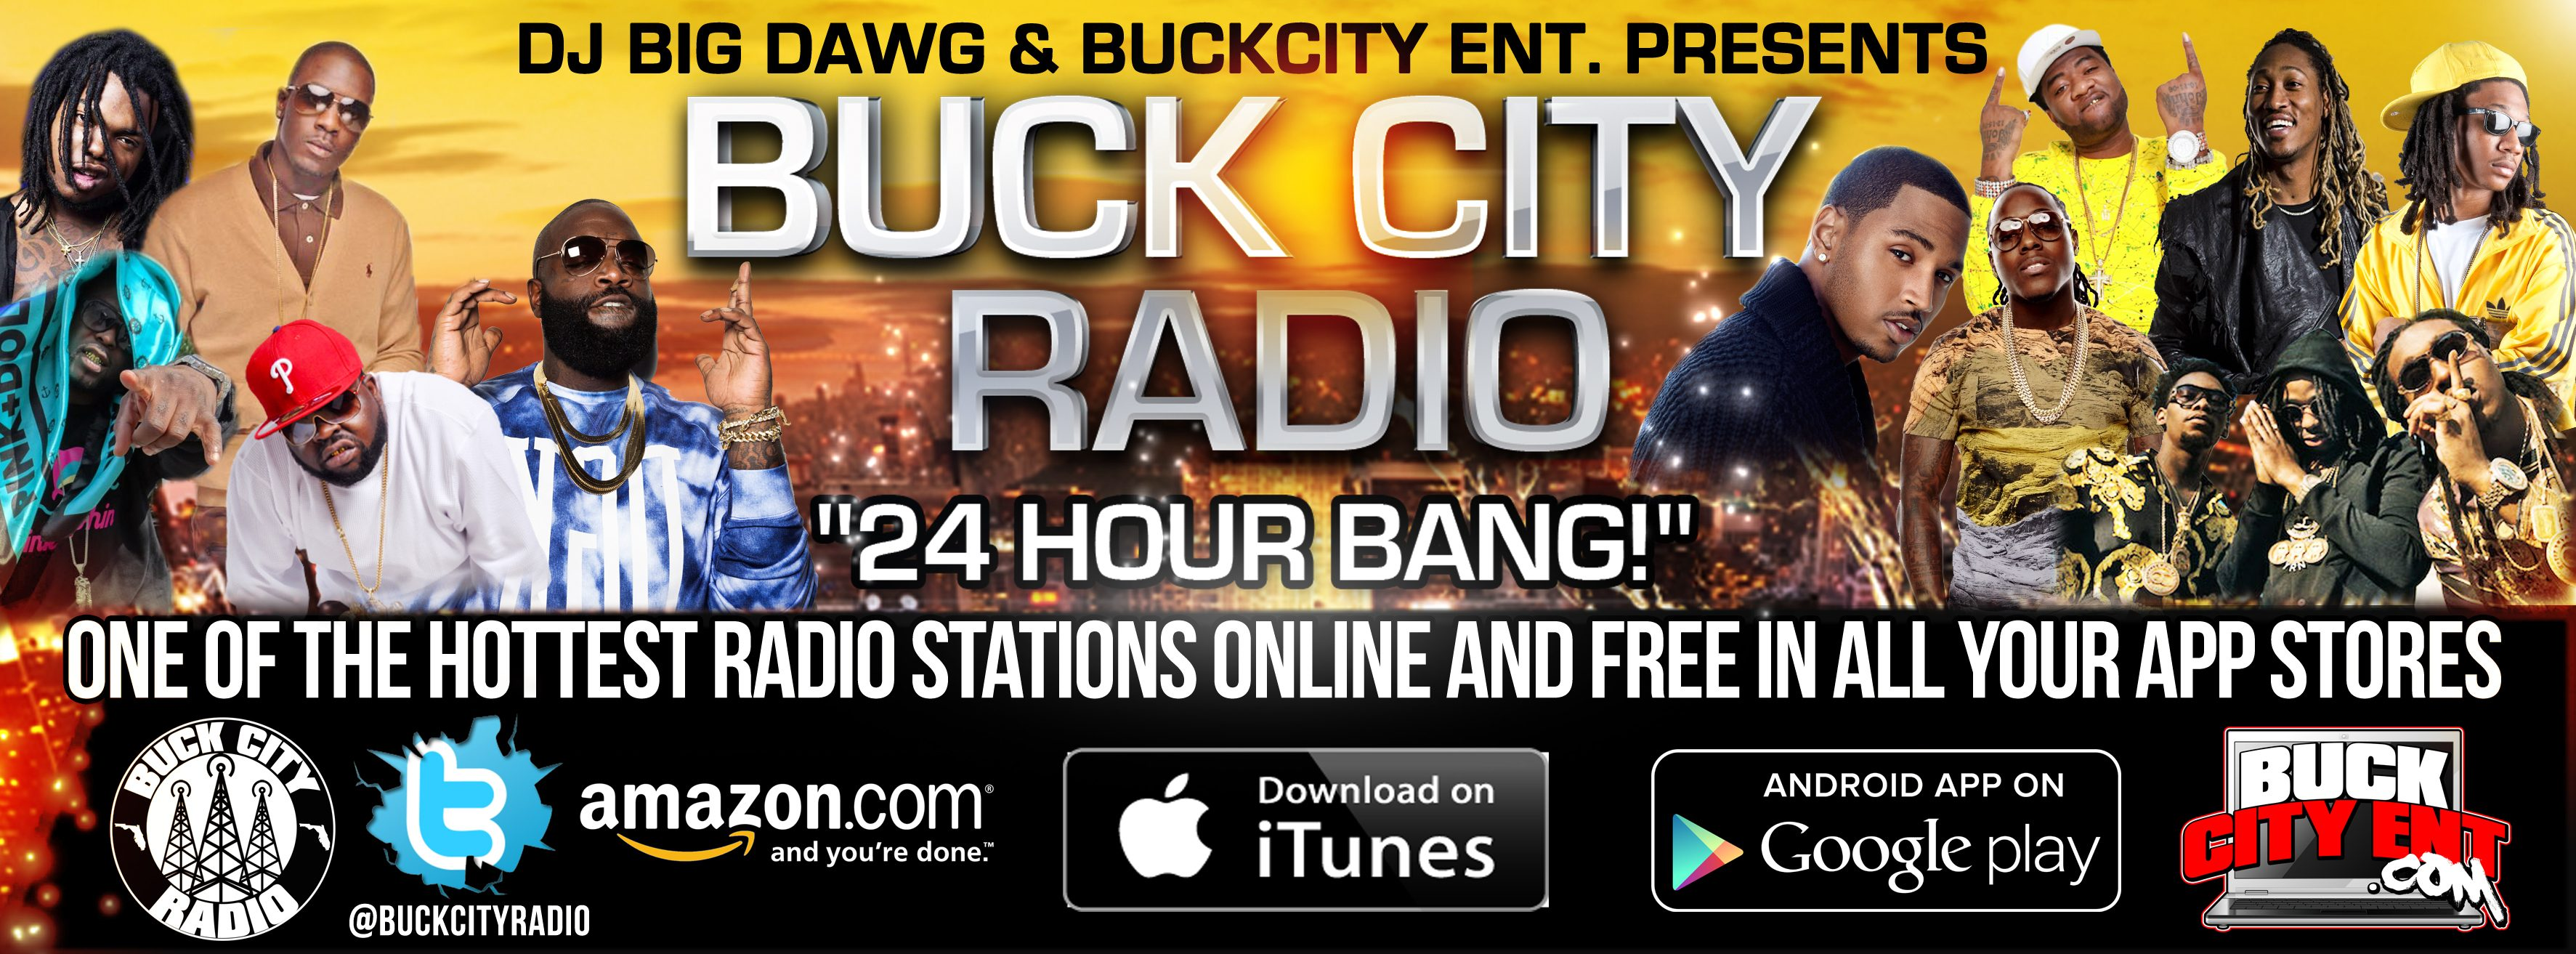 Buck City Radio